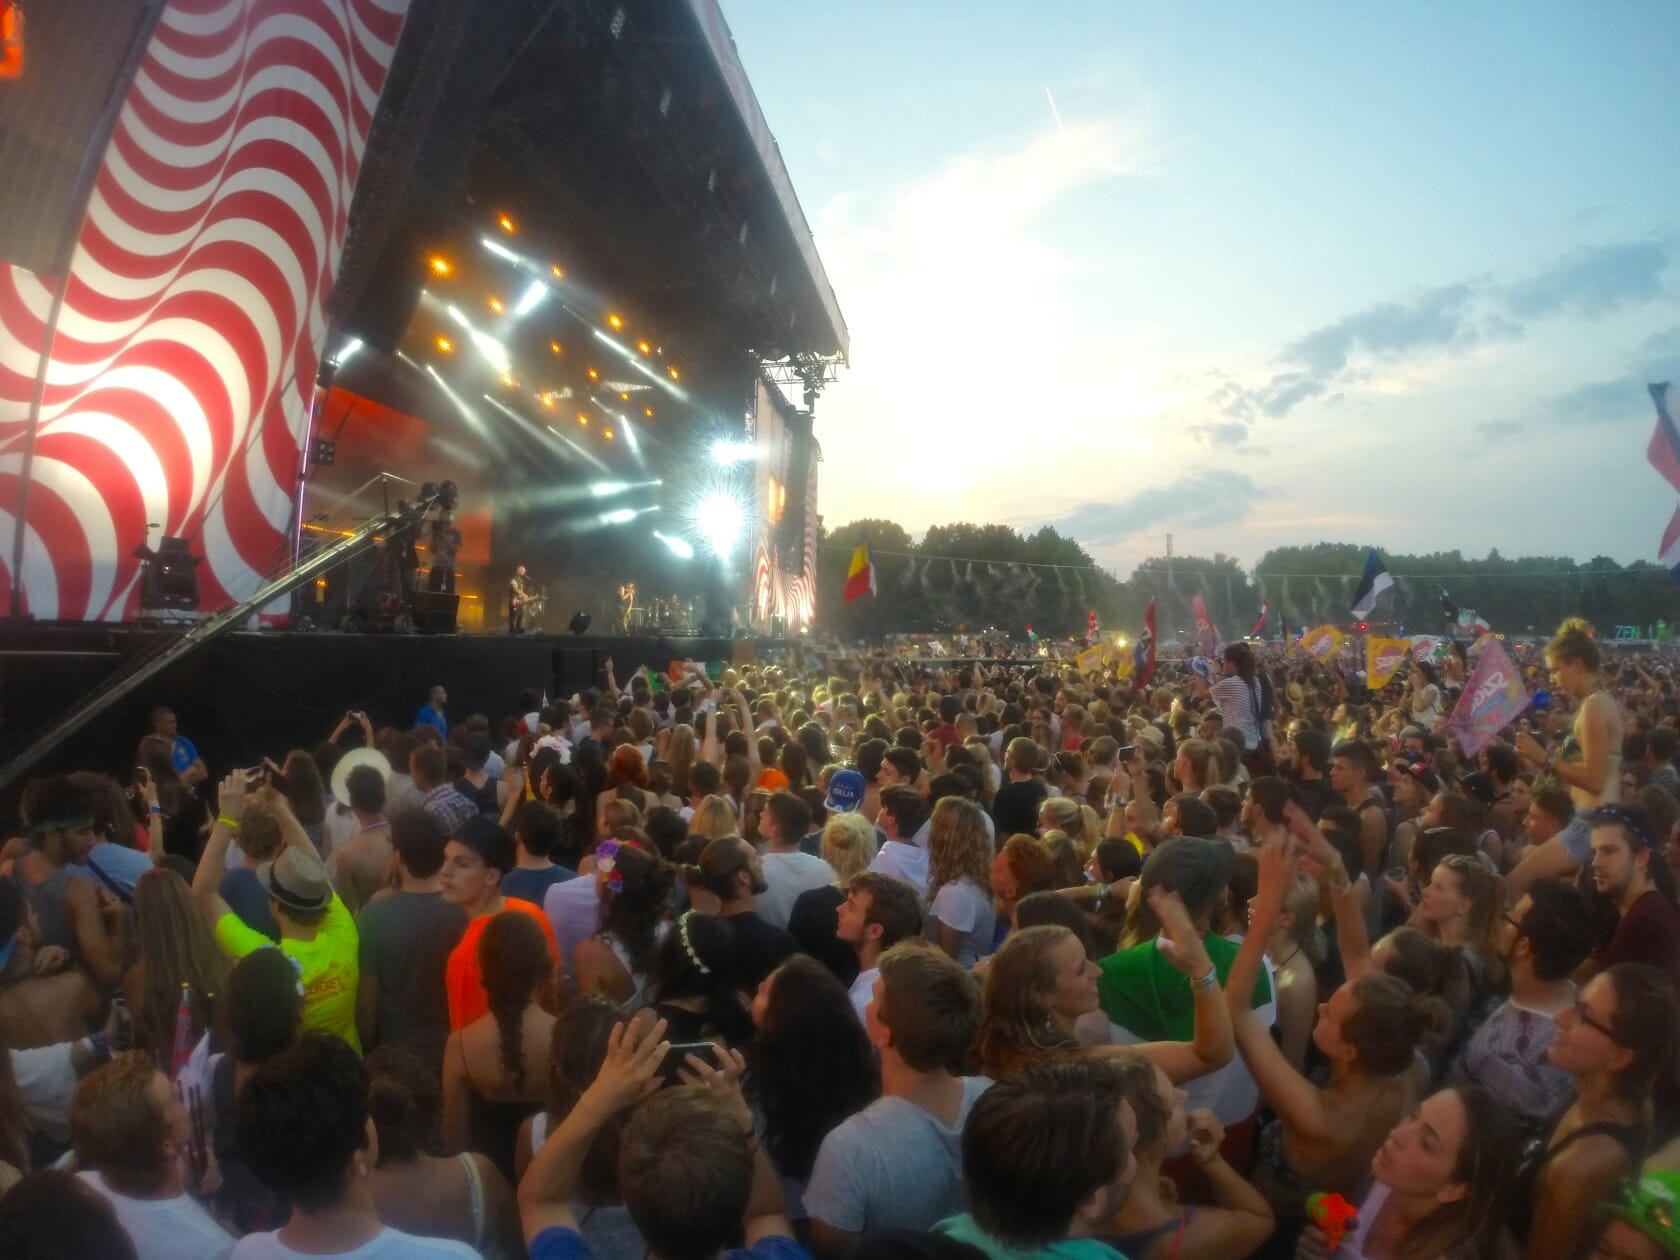 sziget review + festival guide for sziget festival in budapest august main stage